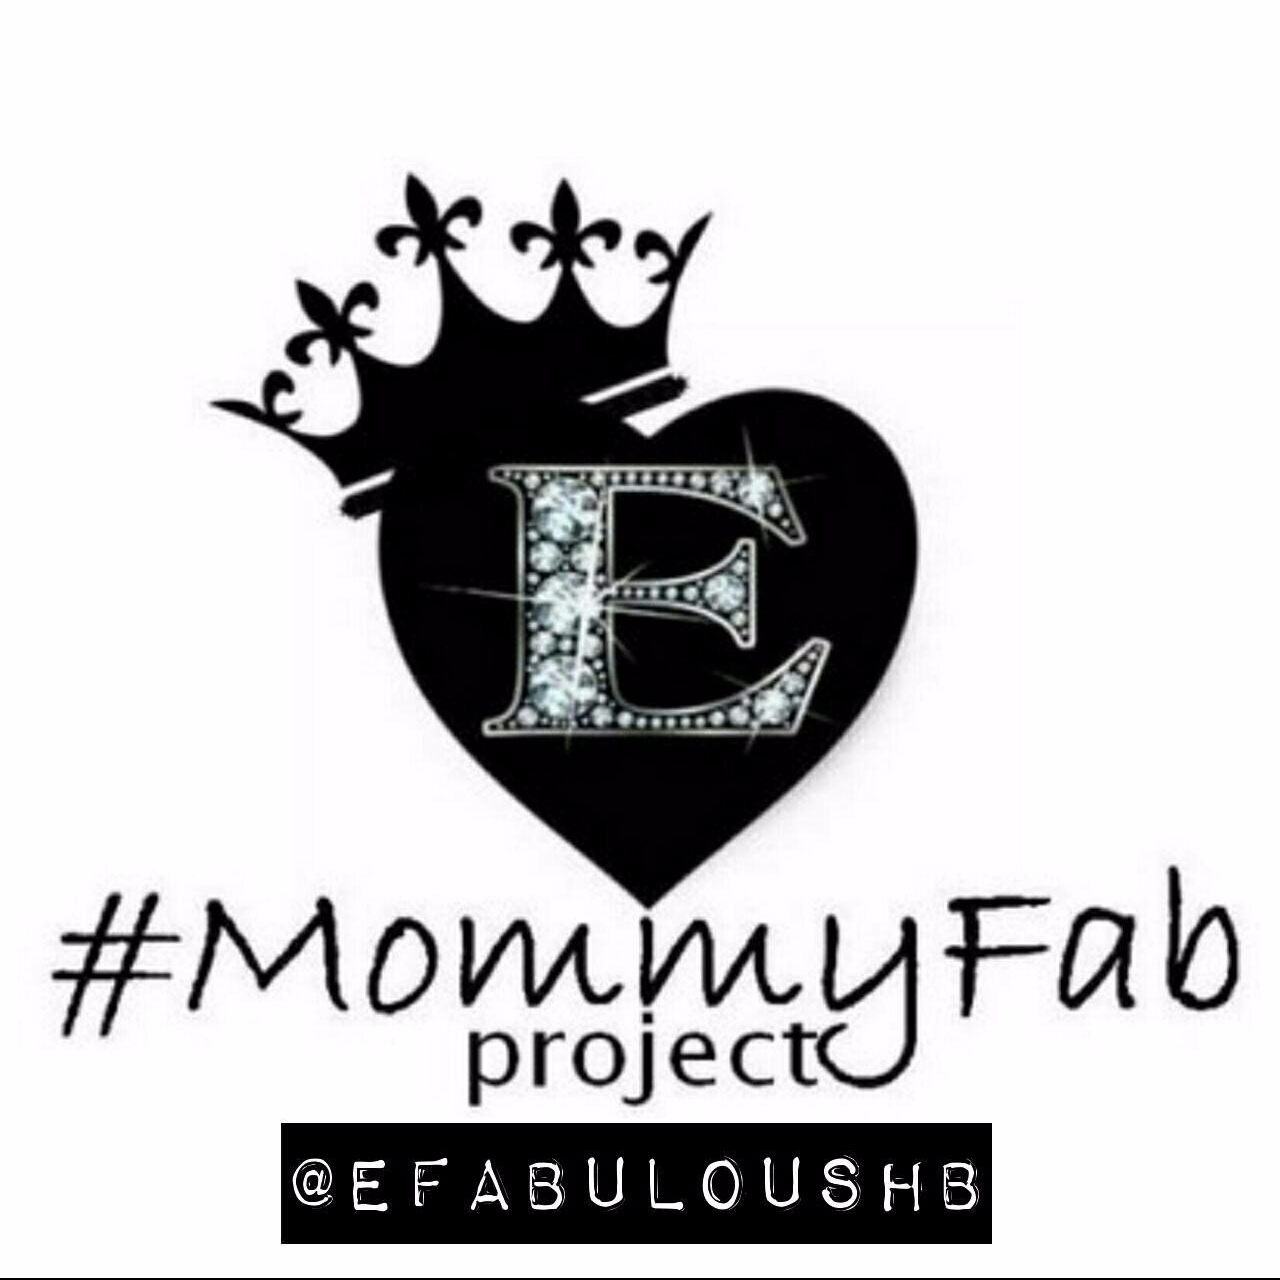 #Mommyfab [project] @EfabulousHB